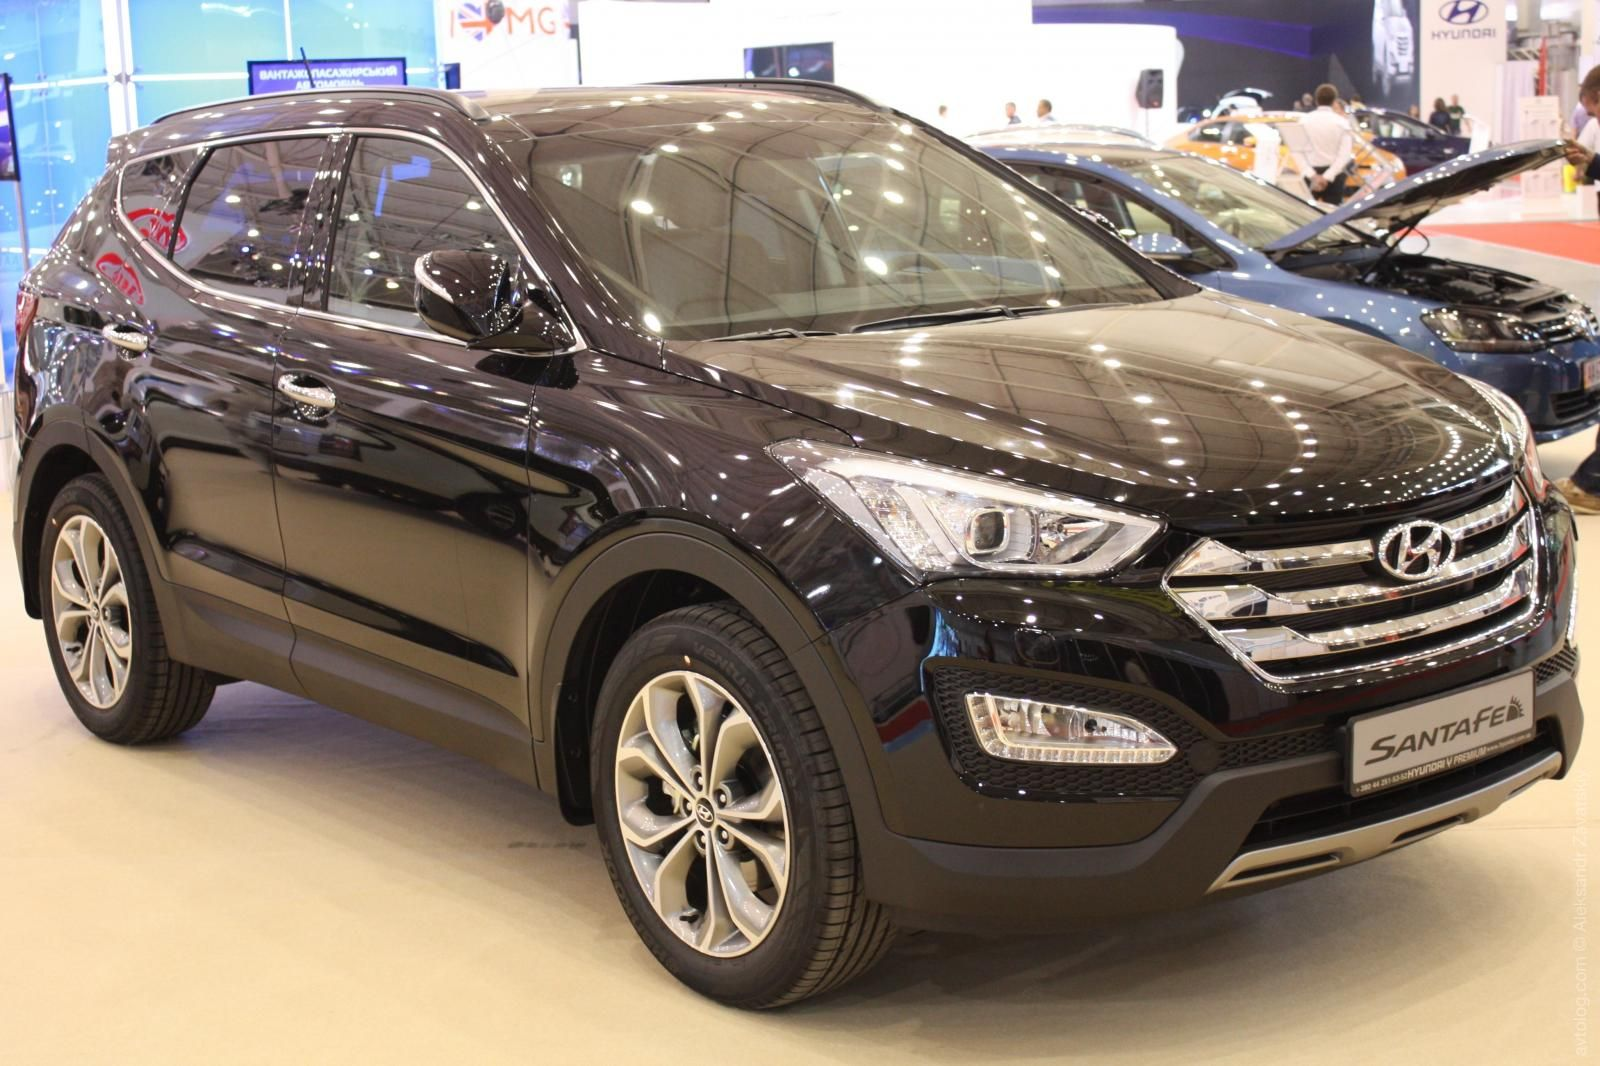 Buy or lease a hyundai santa fe like this one with great